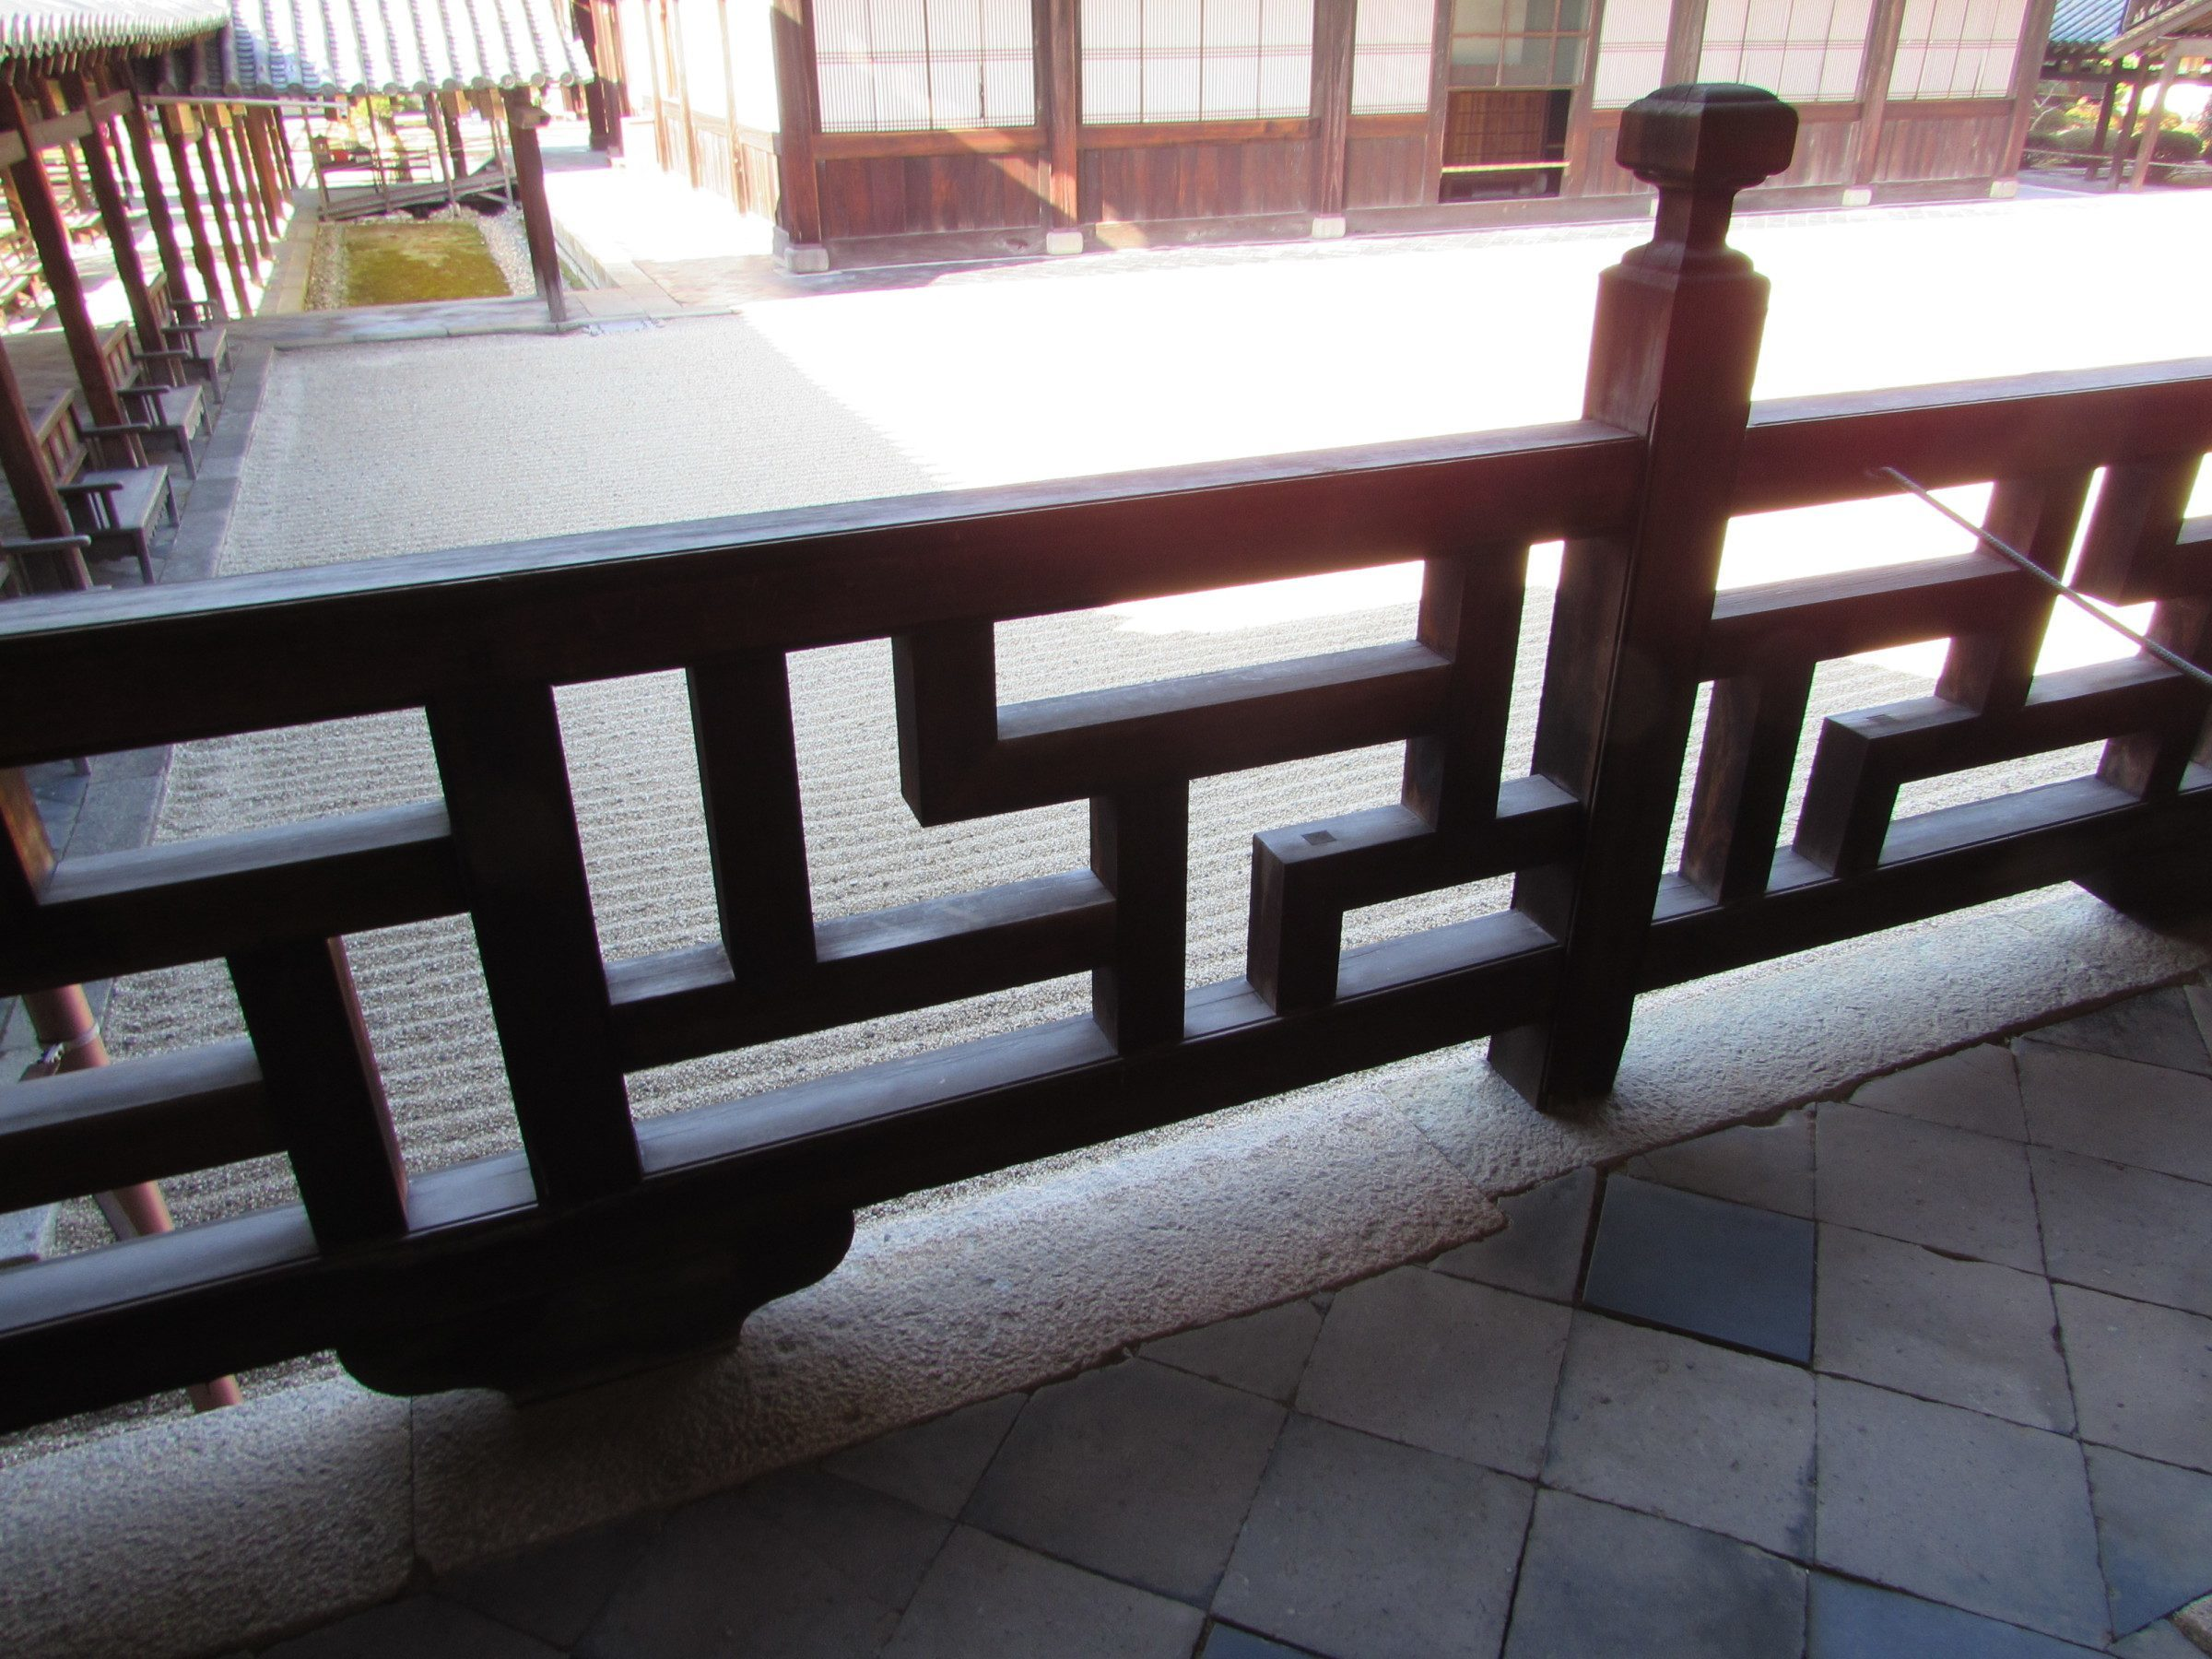 One final thing that Mampuku-ji is famous for are the fences that surround the buildings, which are based on swastika designs. Although the swastika now has sinister associations in the west following it's appropriation by the Nazi party, it has a history going back thousands of years in Asia. It began as a sacred Hindu symbol of auspiciousness that was later adopted by Buddhism. Although it's a little tricky to make out the swastika pattern in this fence...